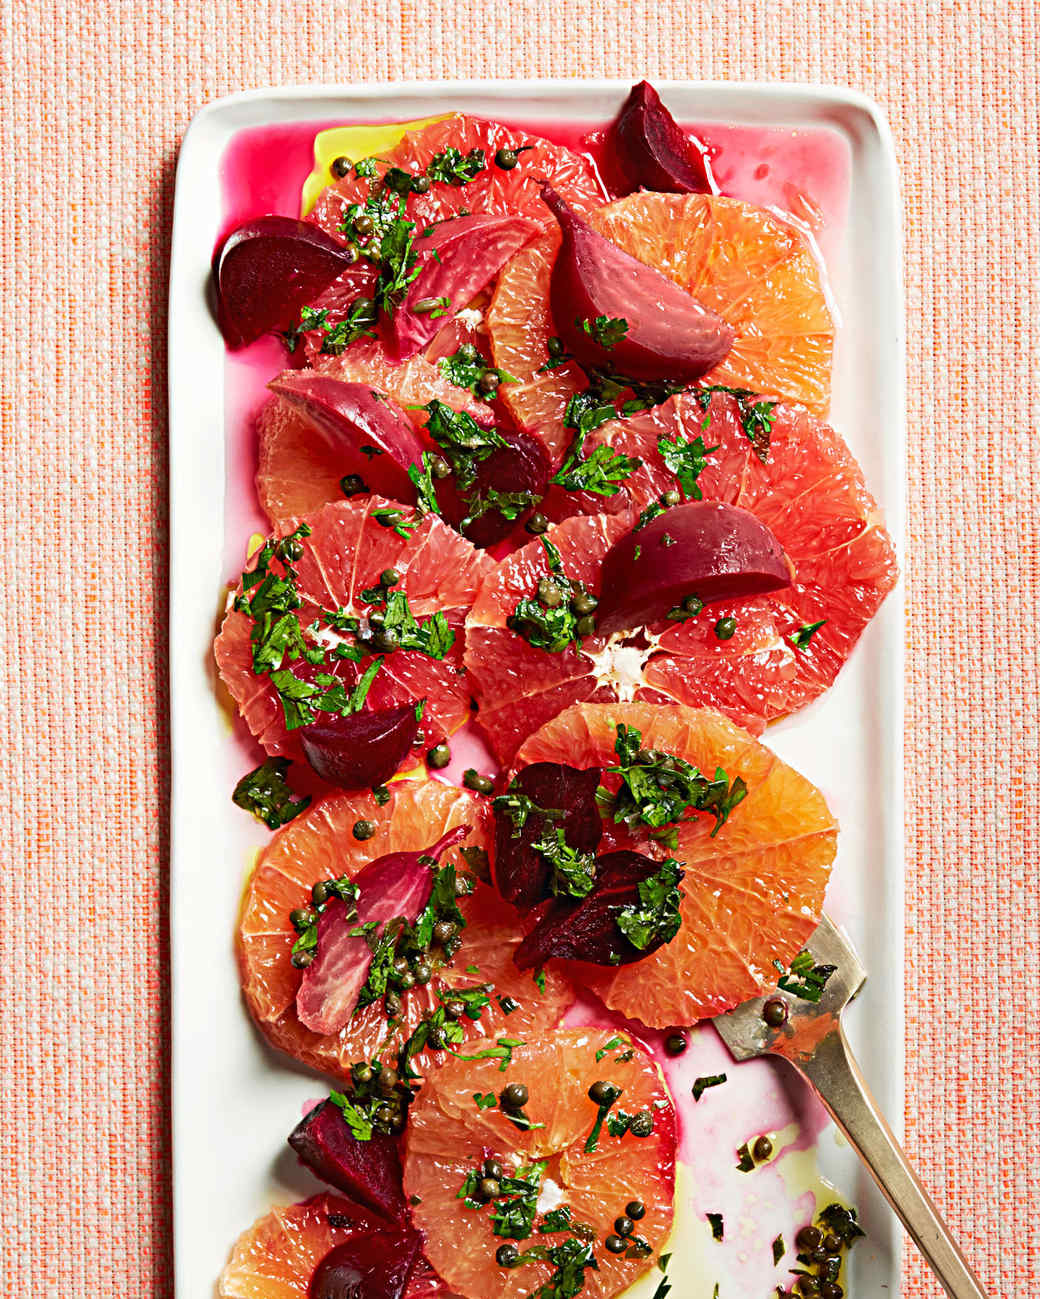 Vinegar-roasted-beets-with-grapefruit-and-salsa-verde-102817863_vert